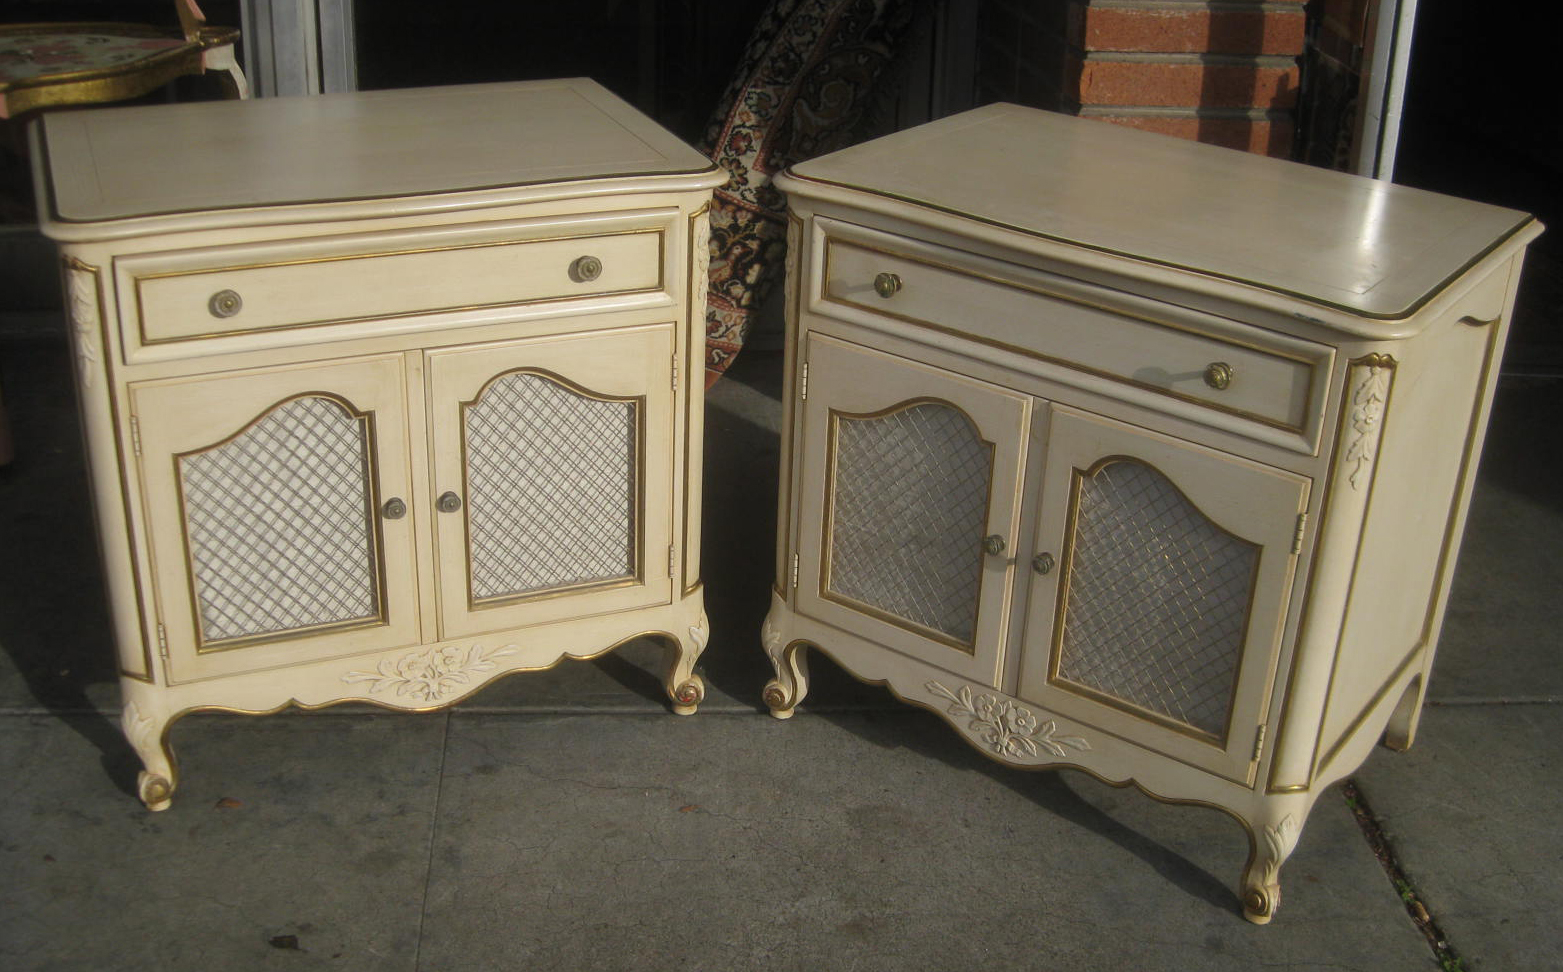 Merveilleux UHURU FURNITURE U0026 COLLECTIBLES: SOLD   French Provincial .